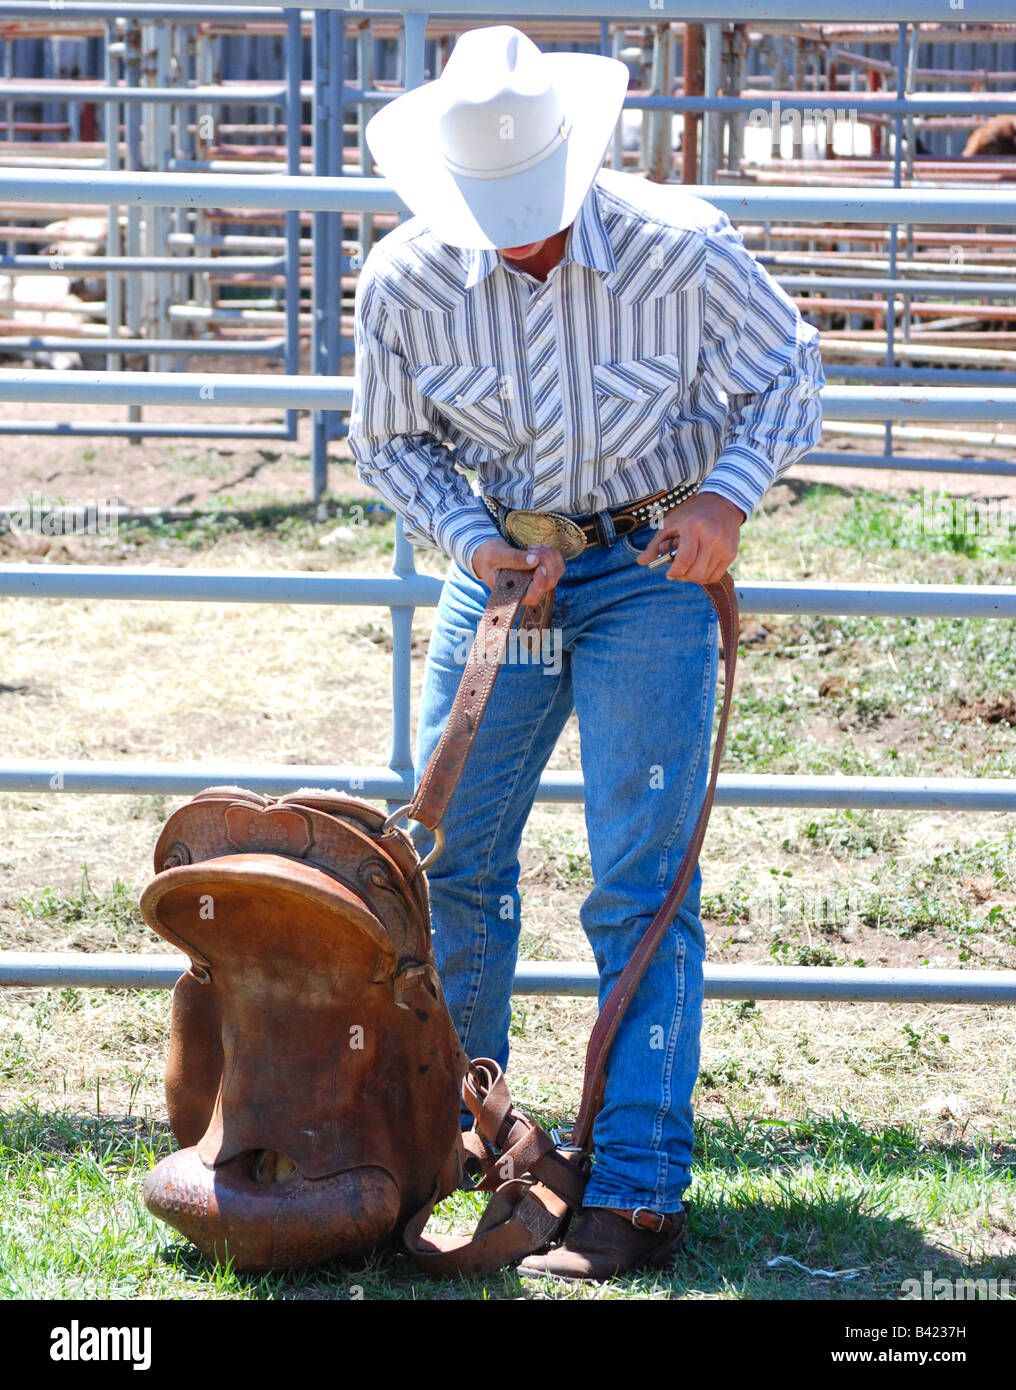 A saddle bronc rider preparing for his ride at the Westcliffe, Colorado rodeo (July 2008) - Stock Image